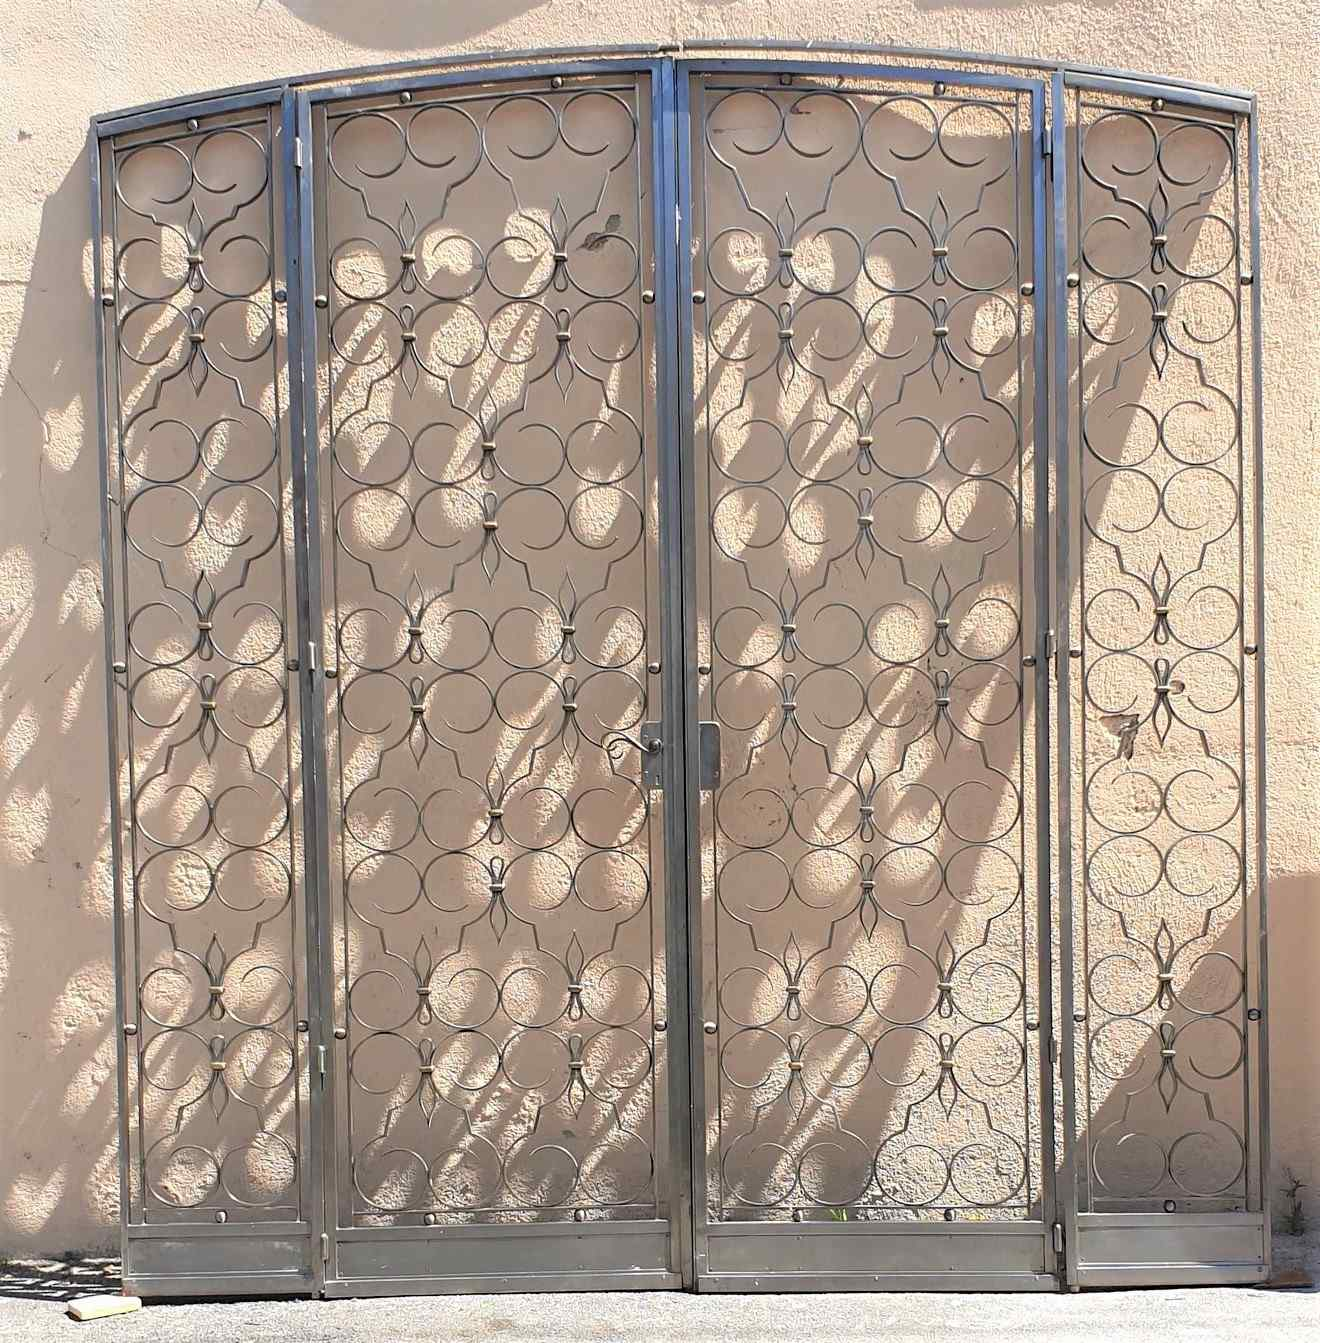 Charles Piguet, Double interior wrought iron door, 20th cent